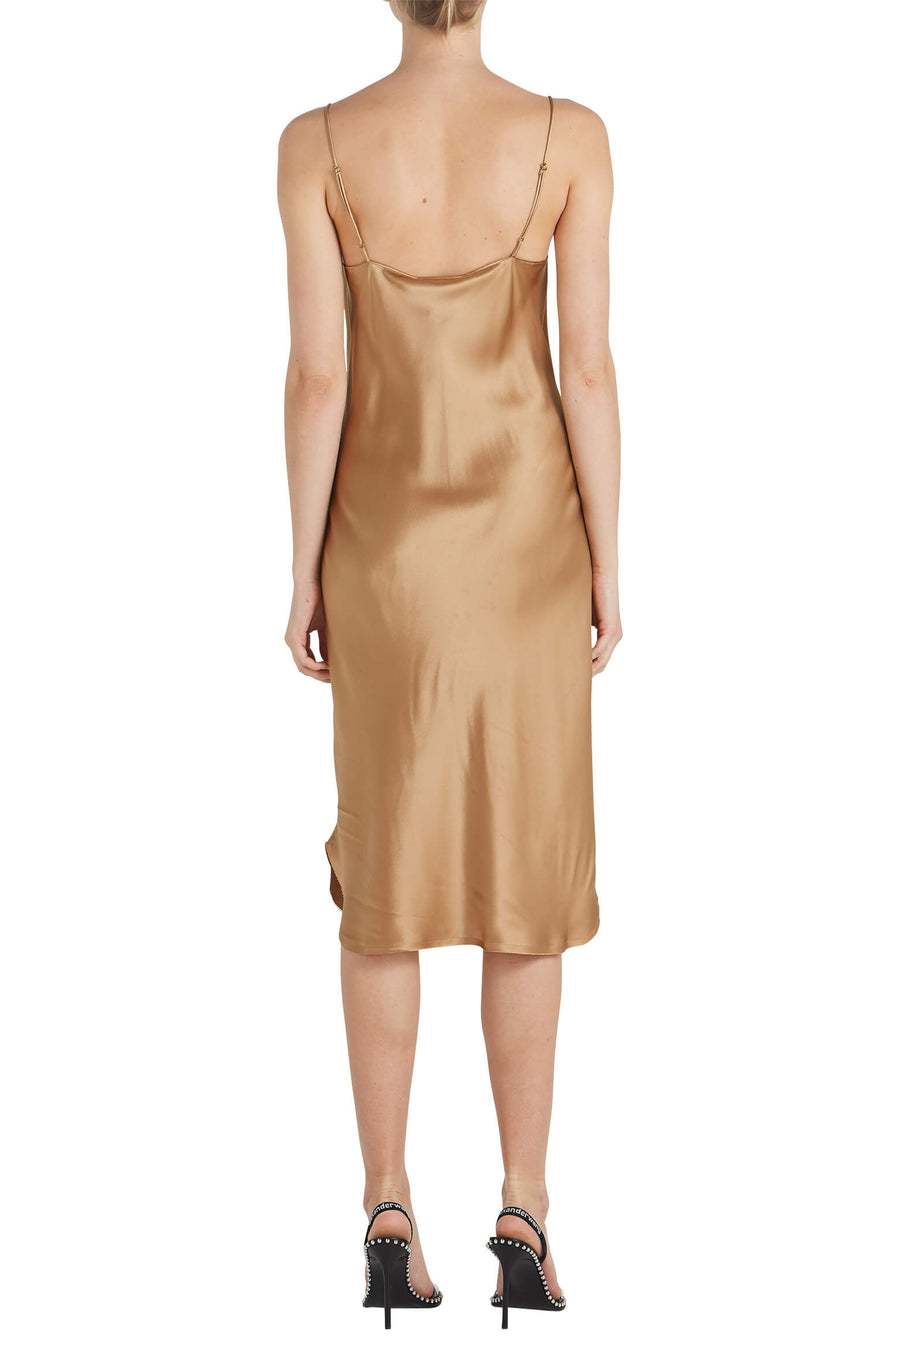 Nili Lotan Junie Dress in Ginger from The New Trend